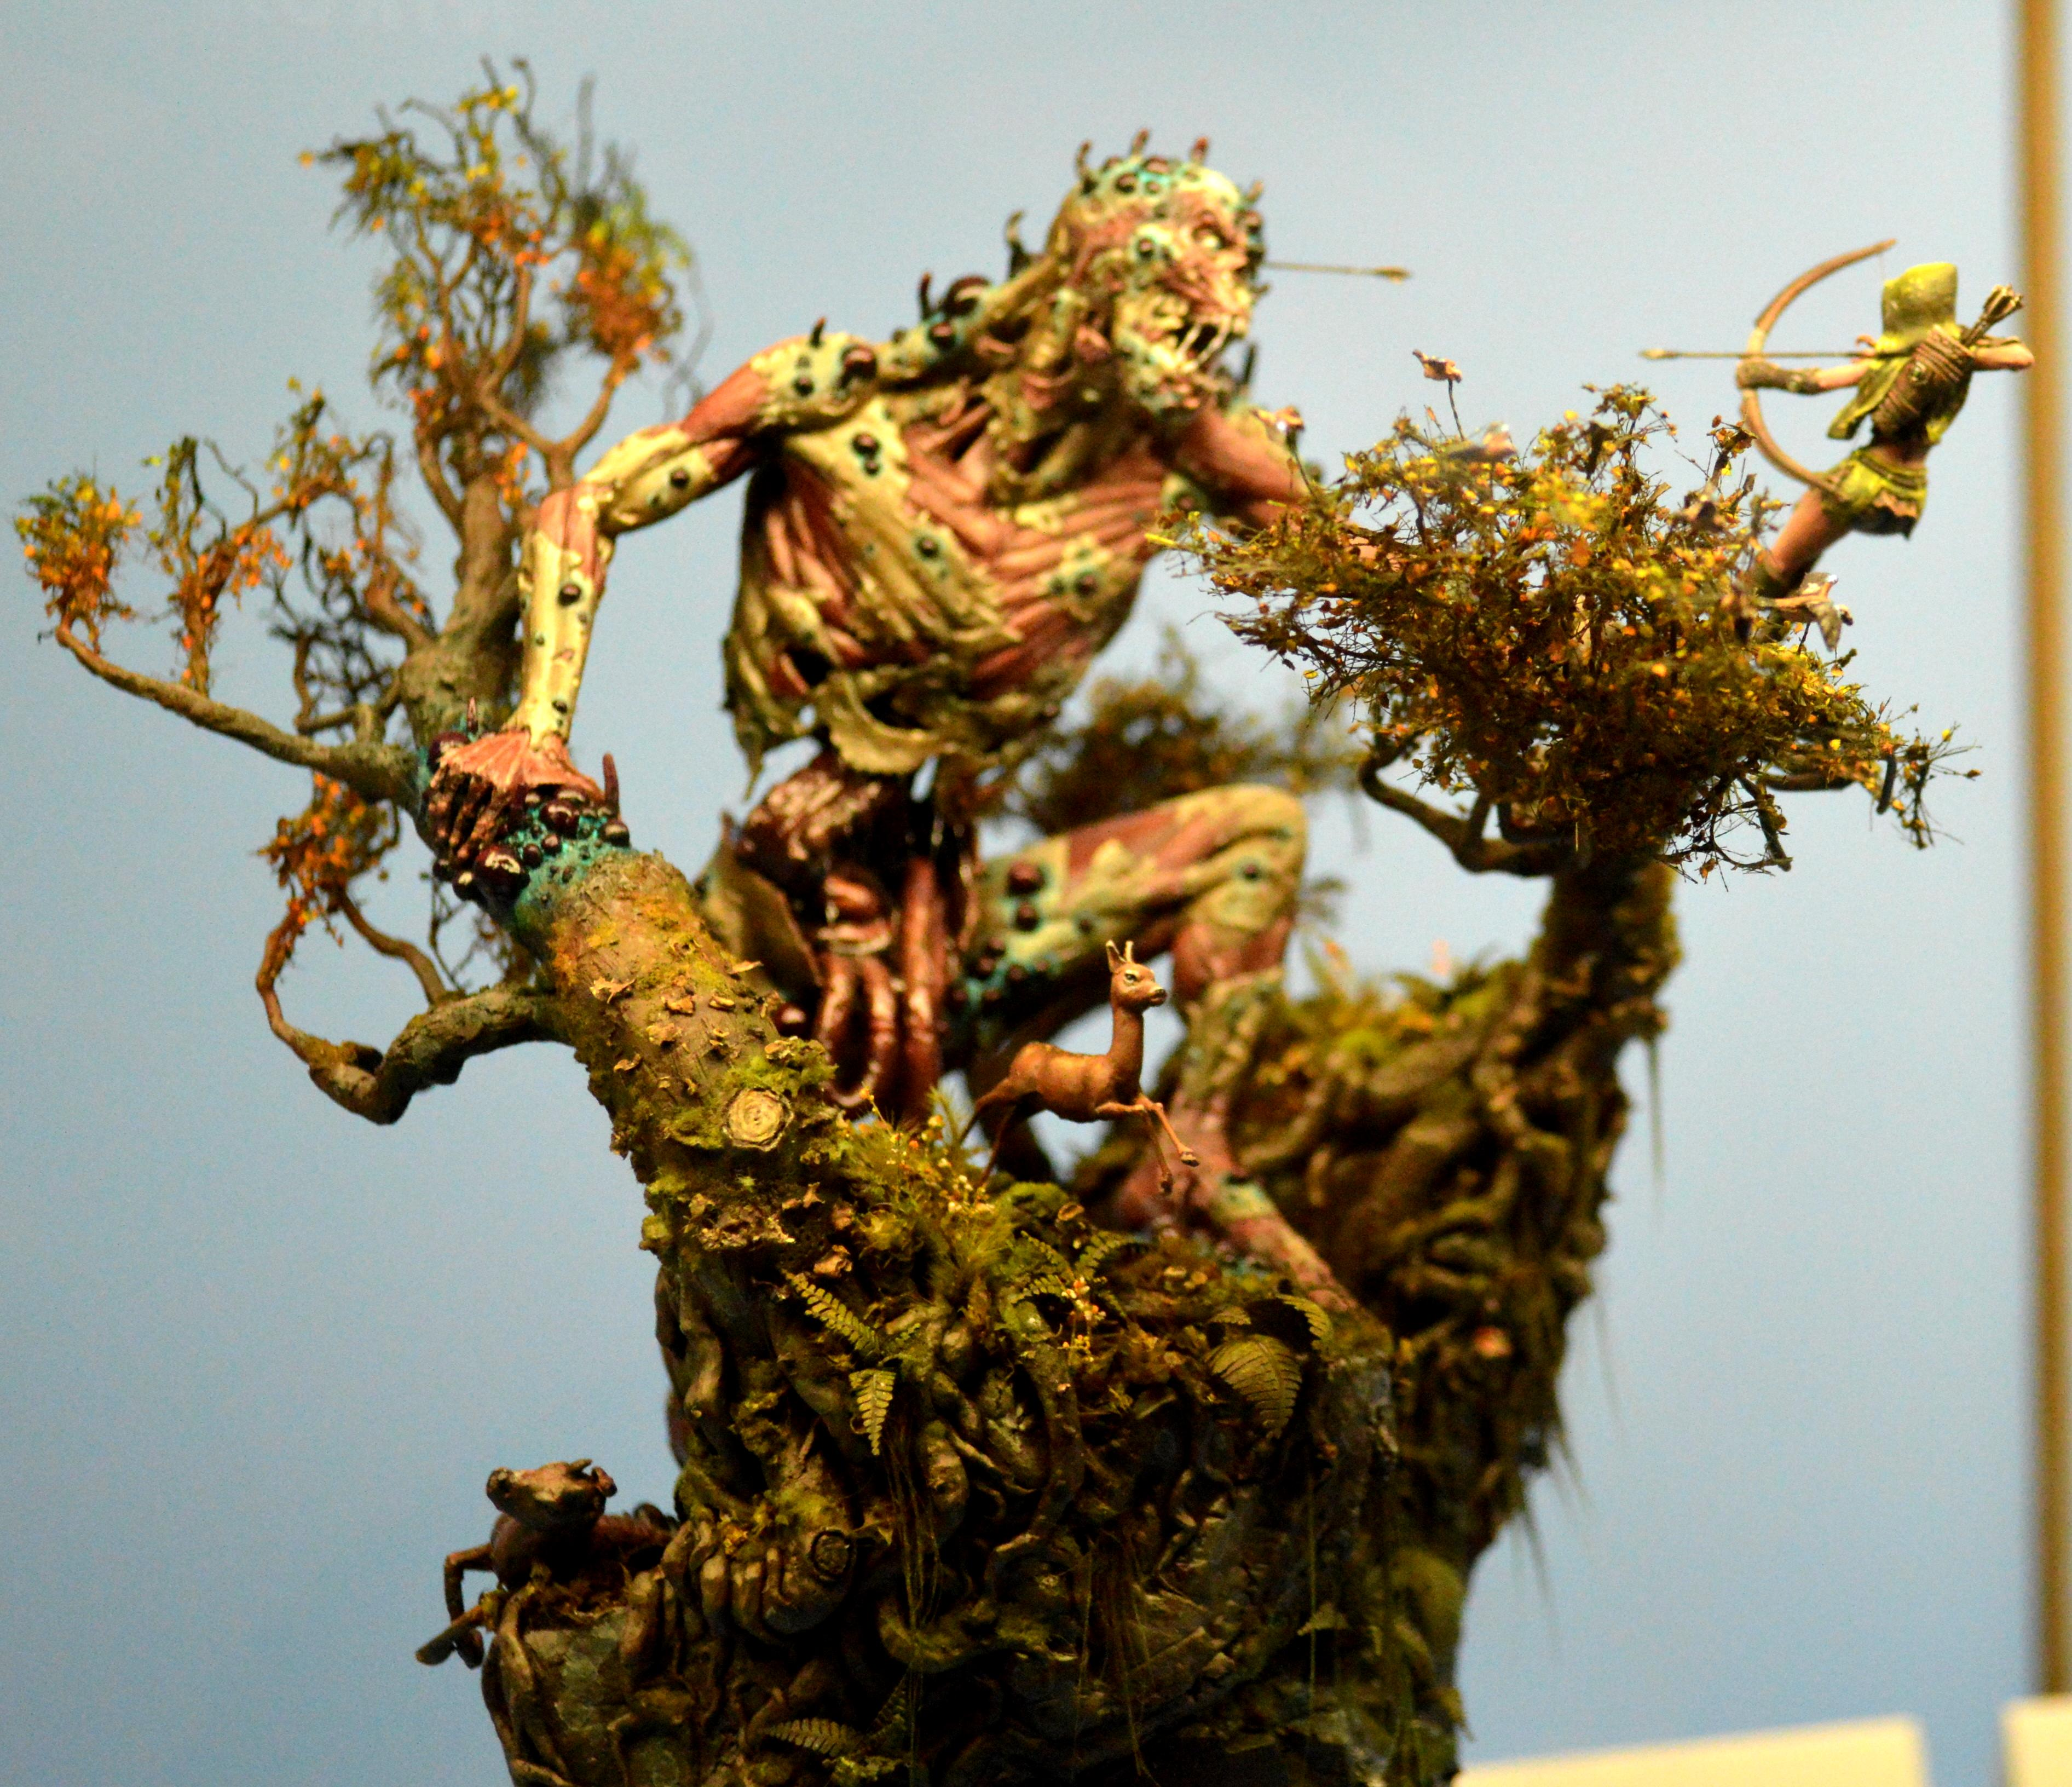 Adepticon 2013, Archers, Crystal Brush, Decay, Deer, Giant, Trees, Zombie